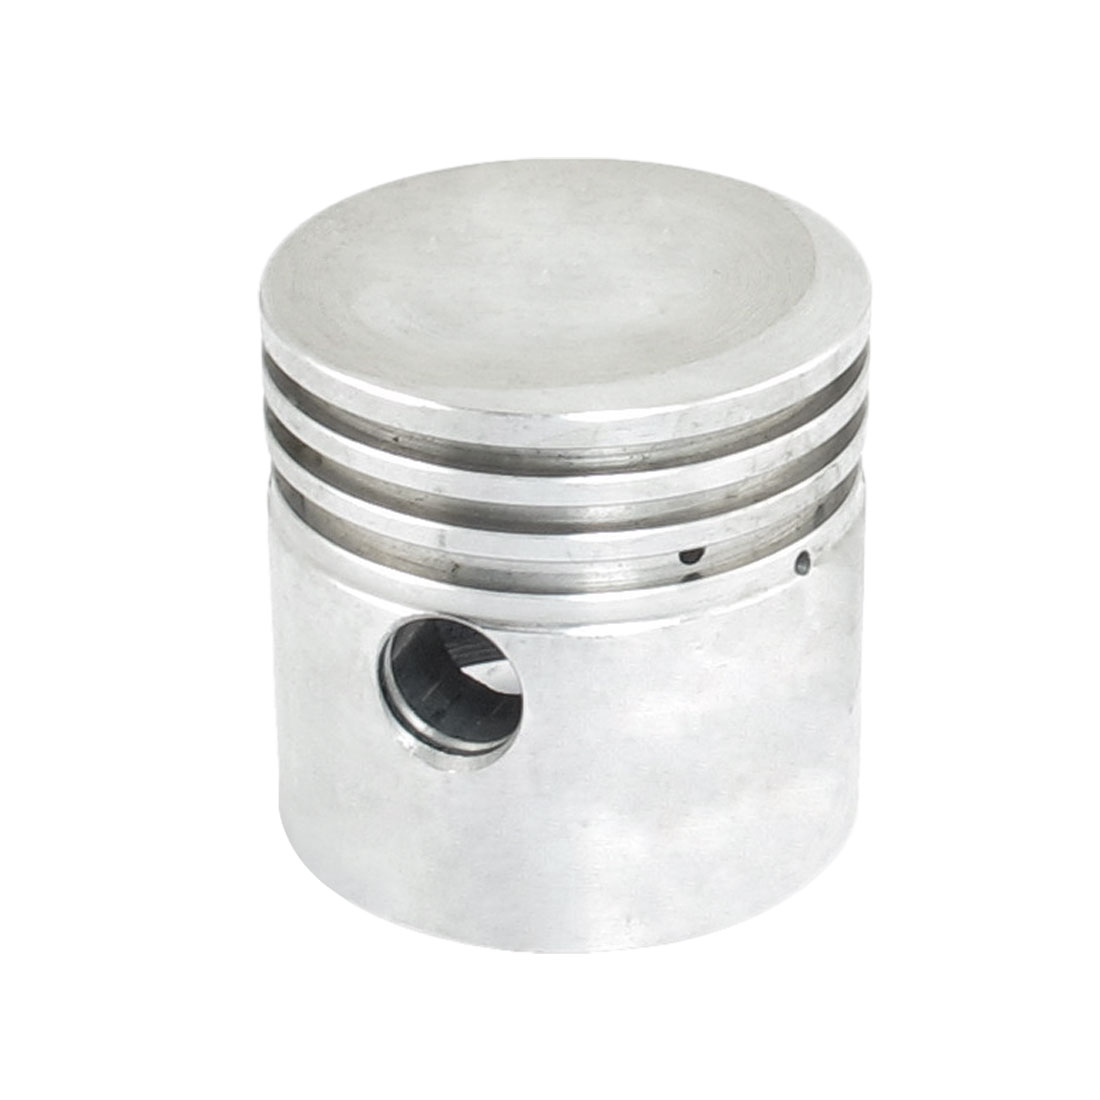 Silver Tone Aluminum Alloy 51mm Diameter Air Compressor Piston